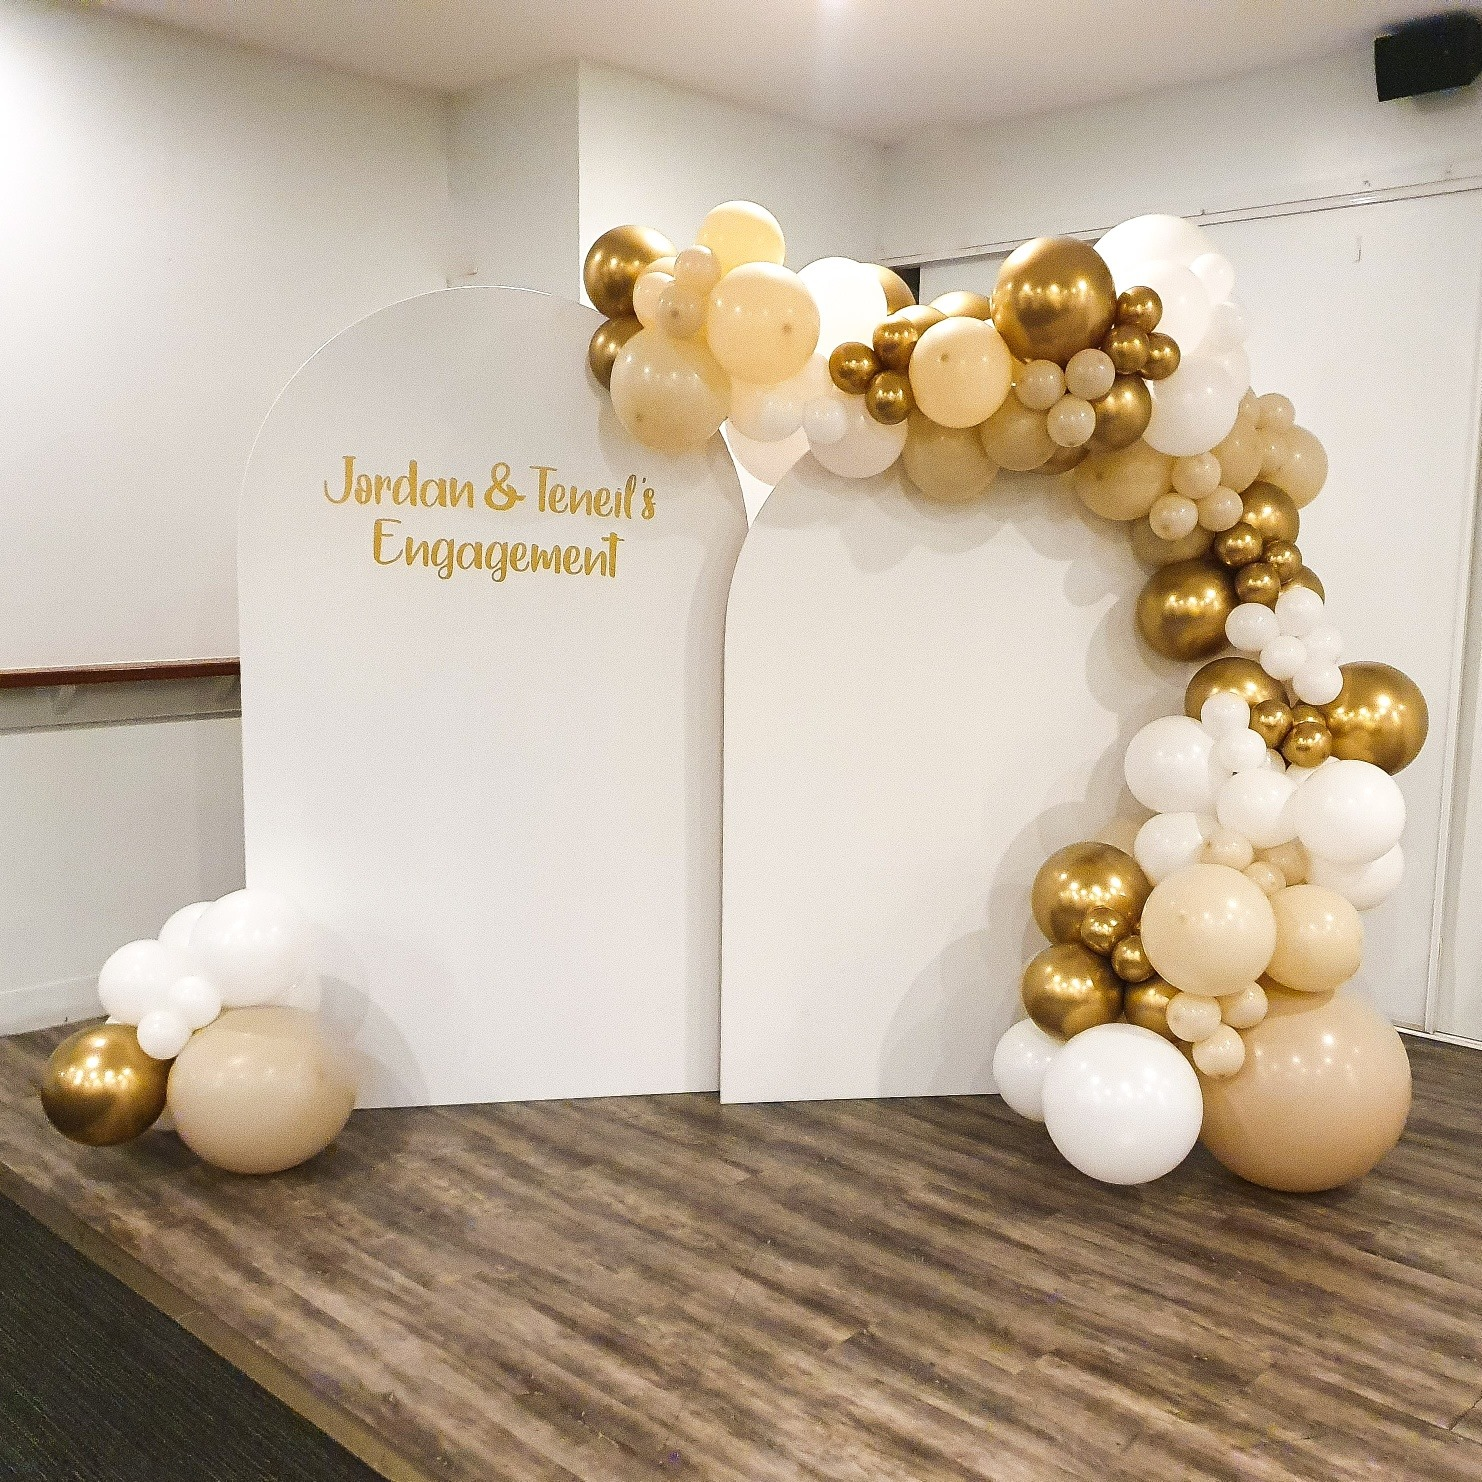 2 White Arches Personalised with White, Sand and Chrome Gold Balloon Garland